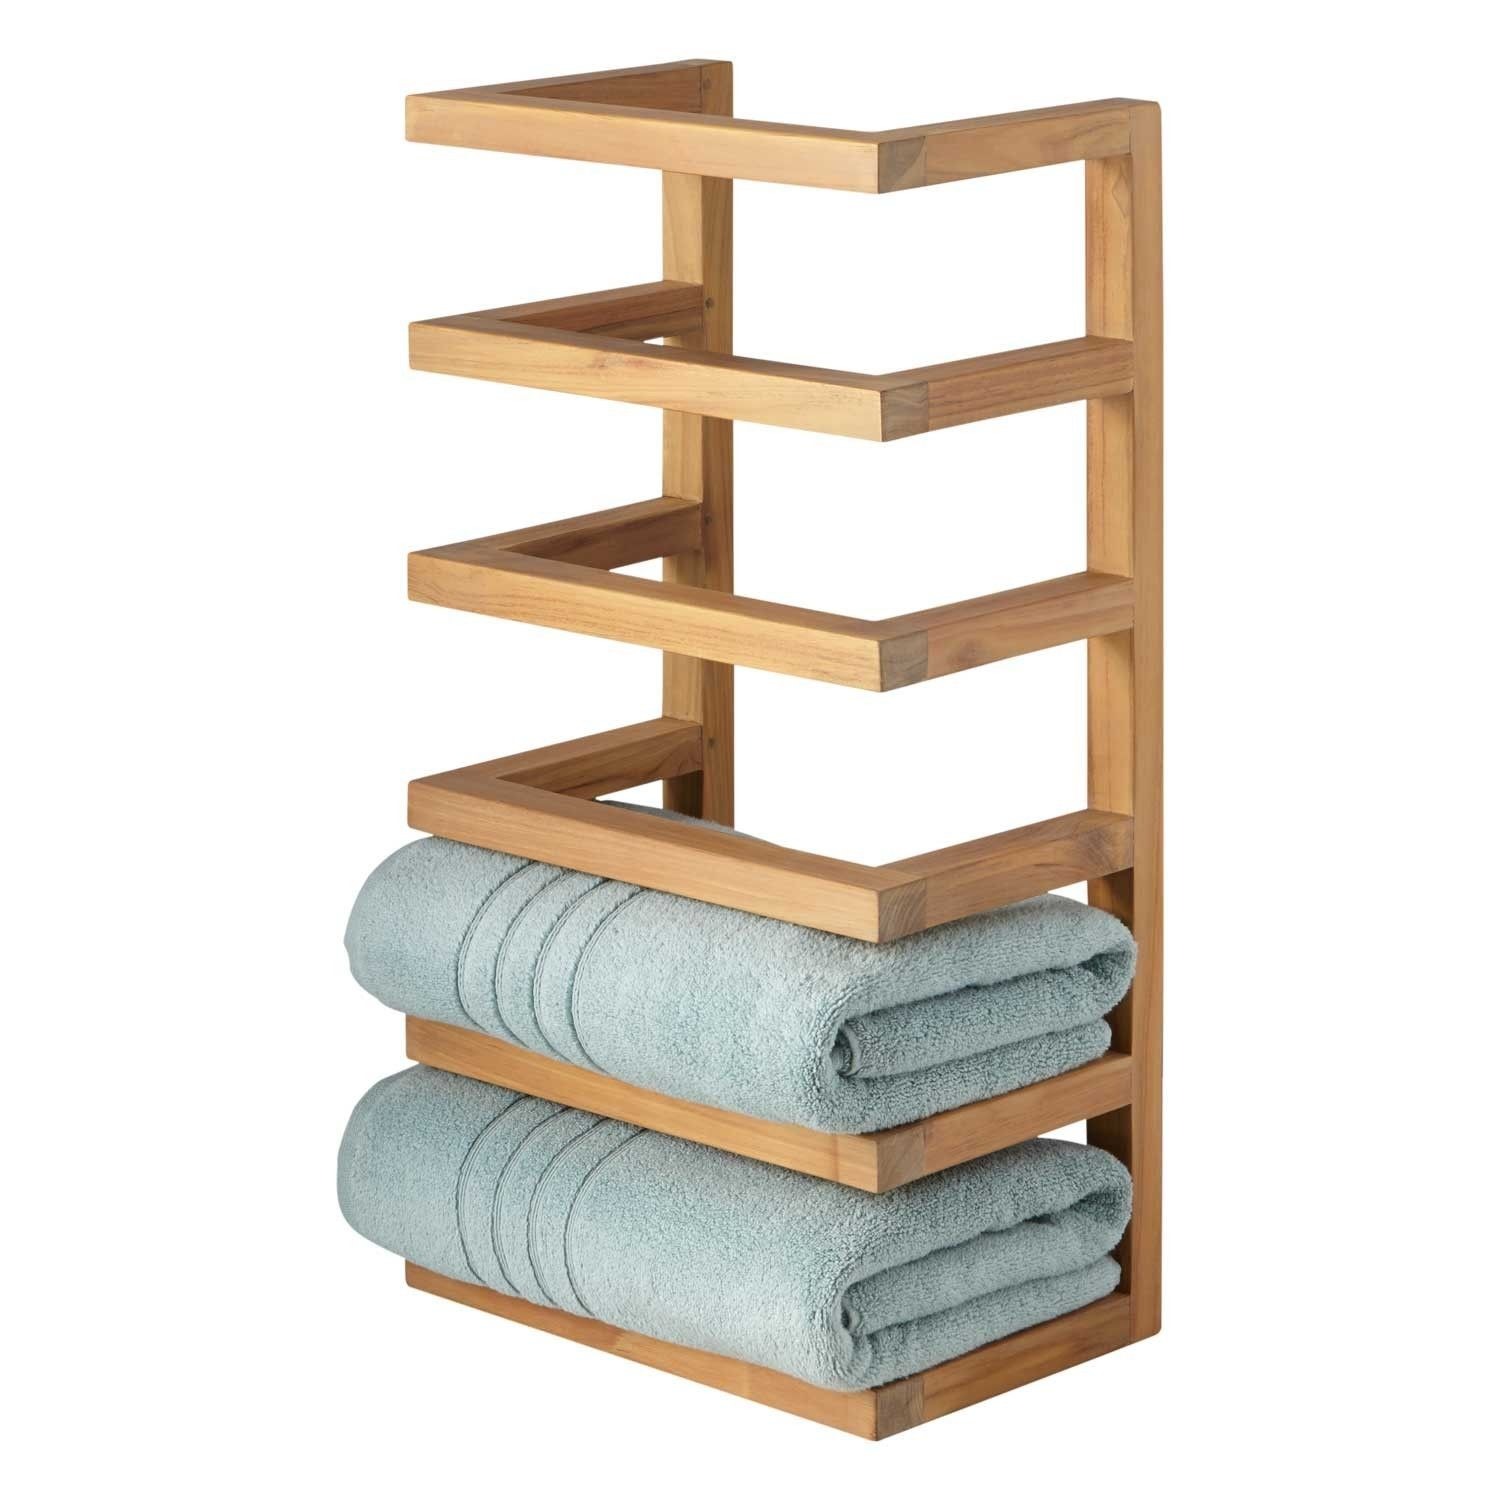 stylist towel shelves organizer inspiration rack toilet decorations for house t above valuable bathroom storage racks wall and idea over